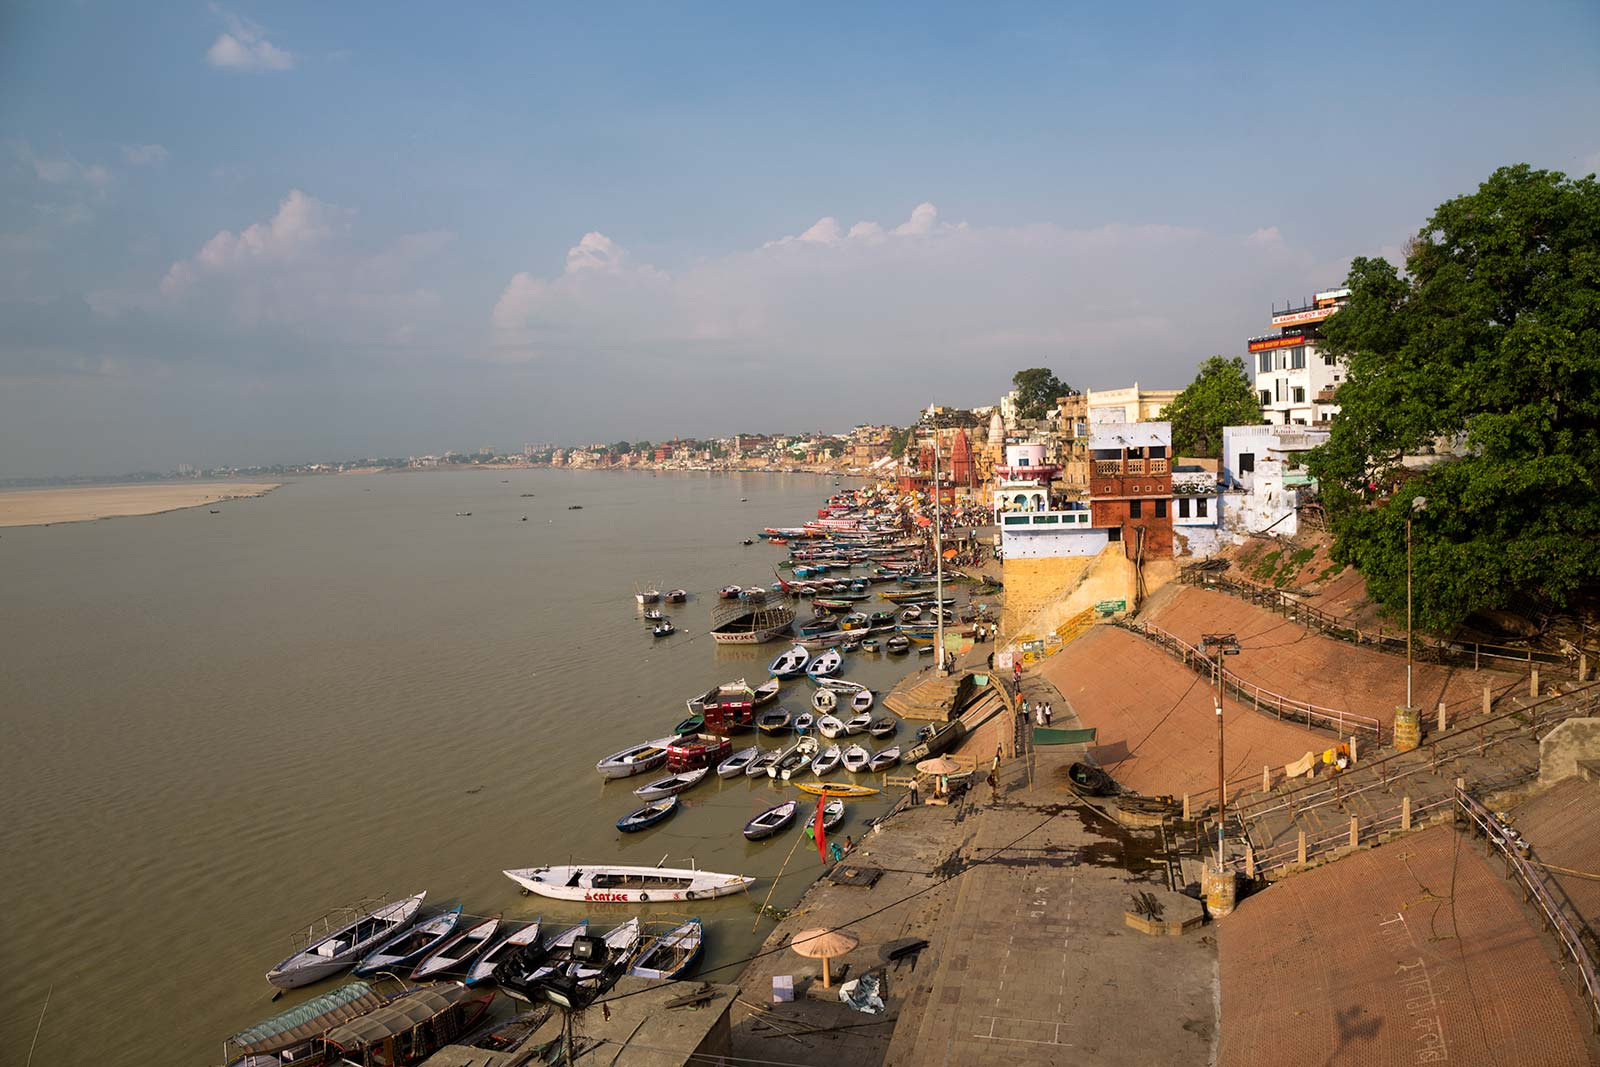 Alka Hotel offers one of the most spectacular views of Varanasi's skyline.